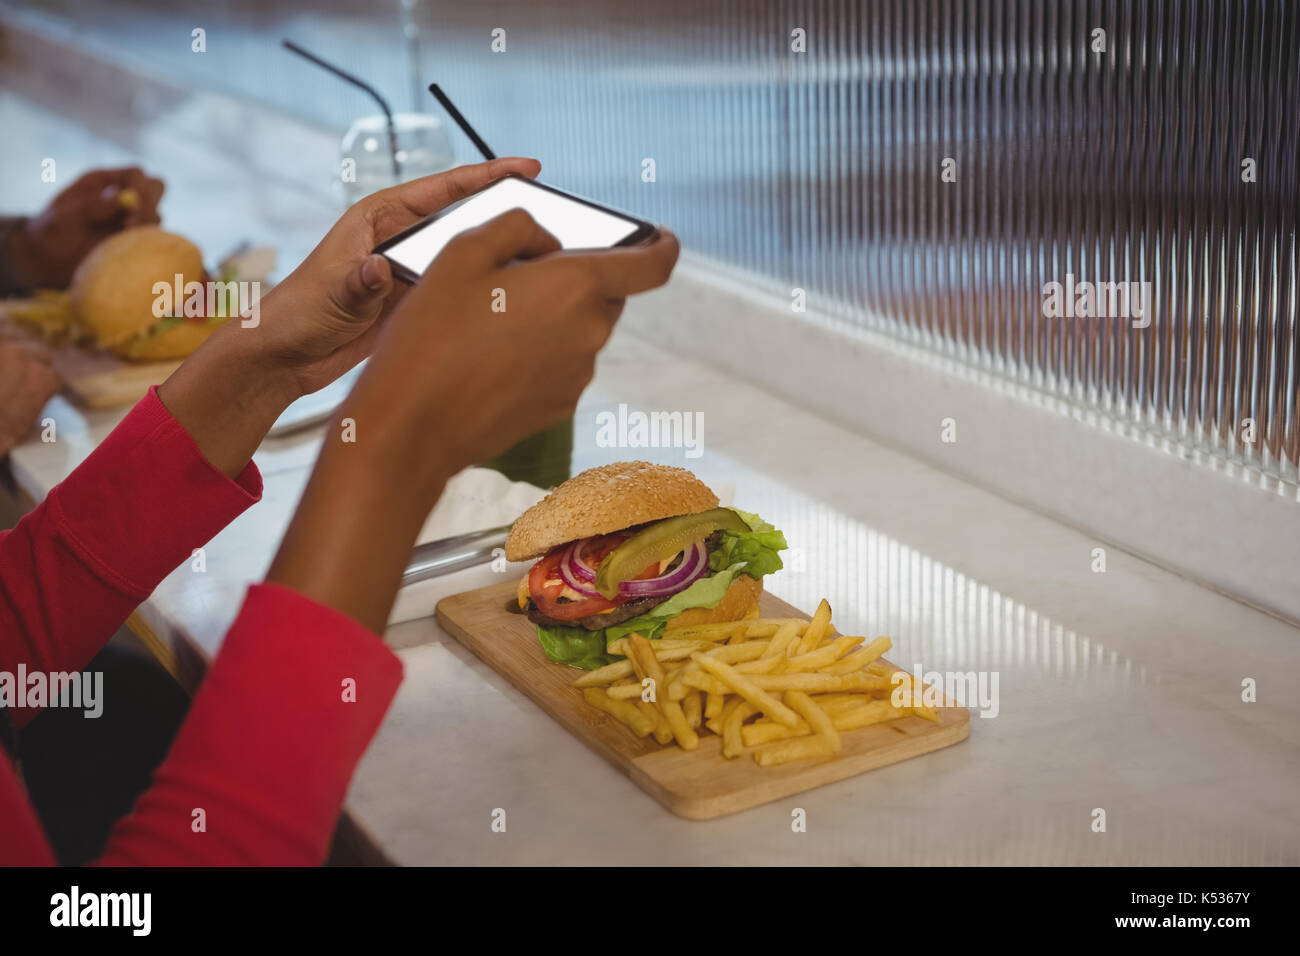 Cropped hands of woman photographing French fries and burger at counter in cafe - Stock Image